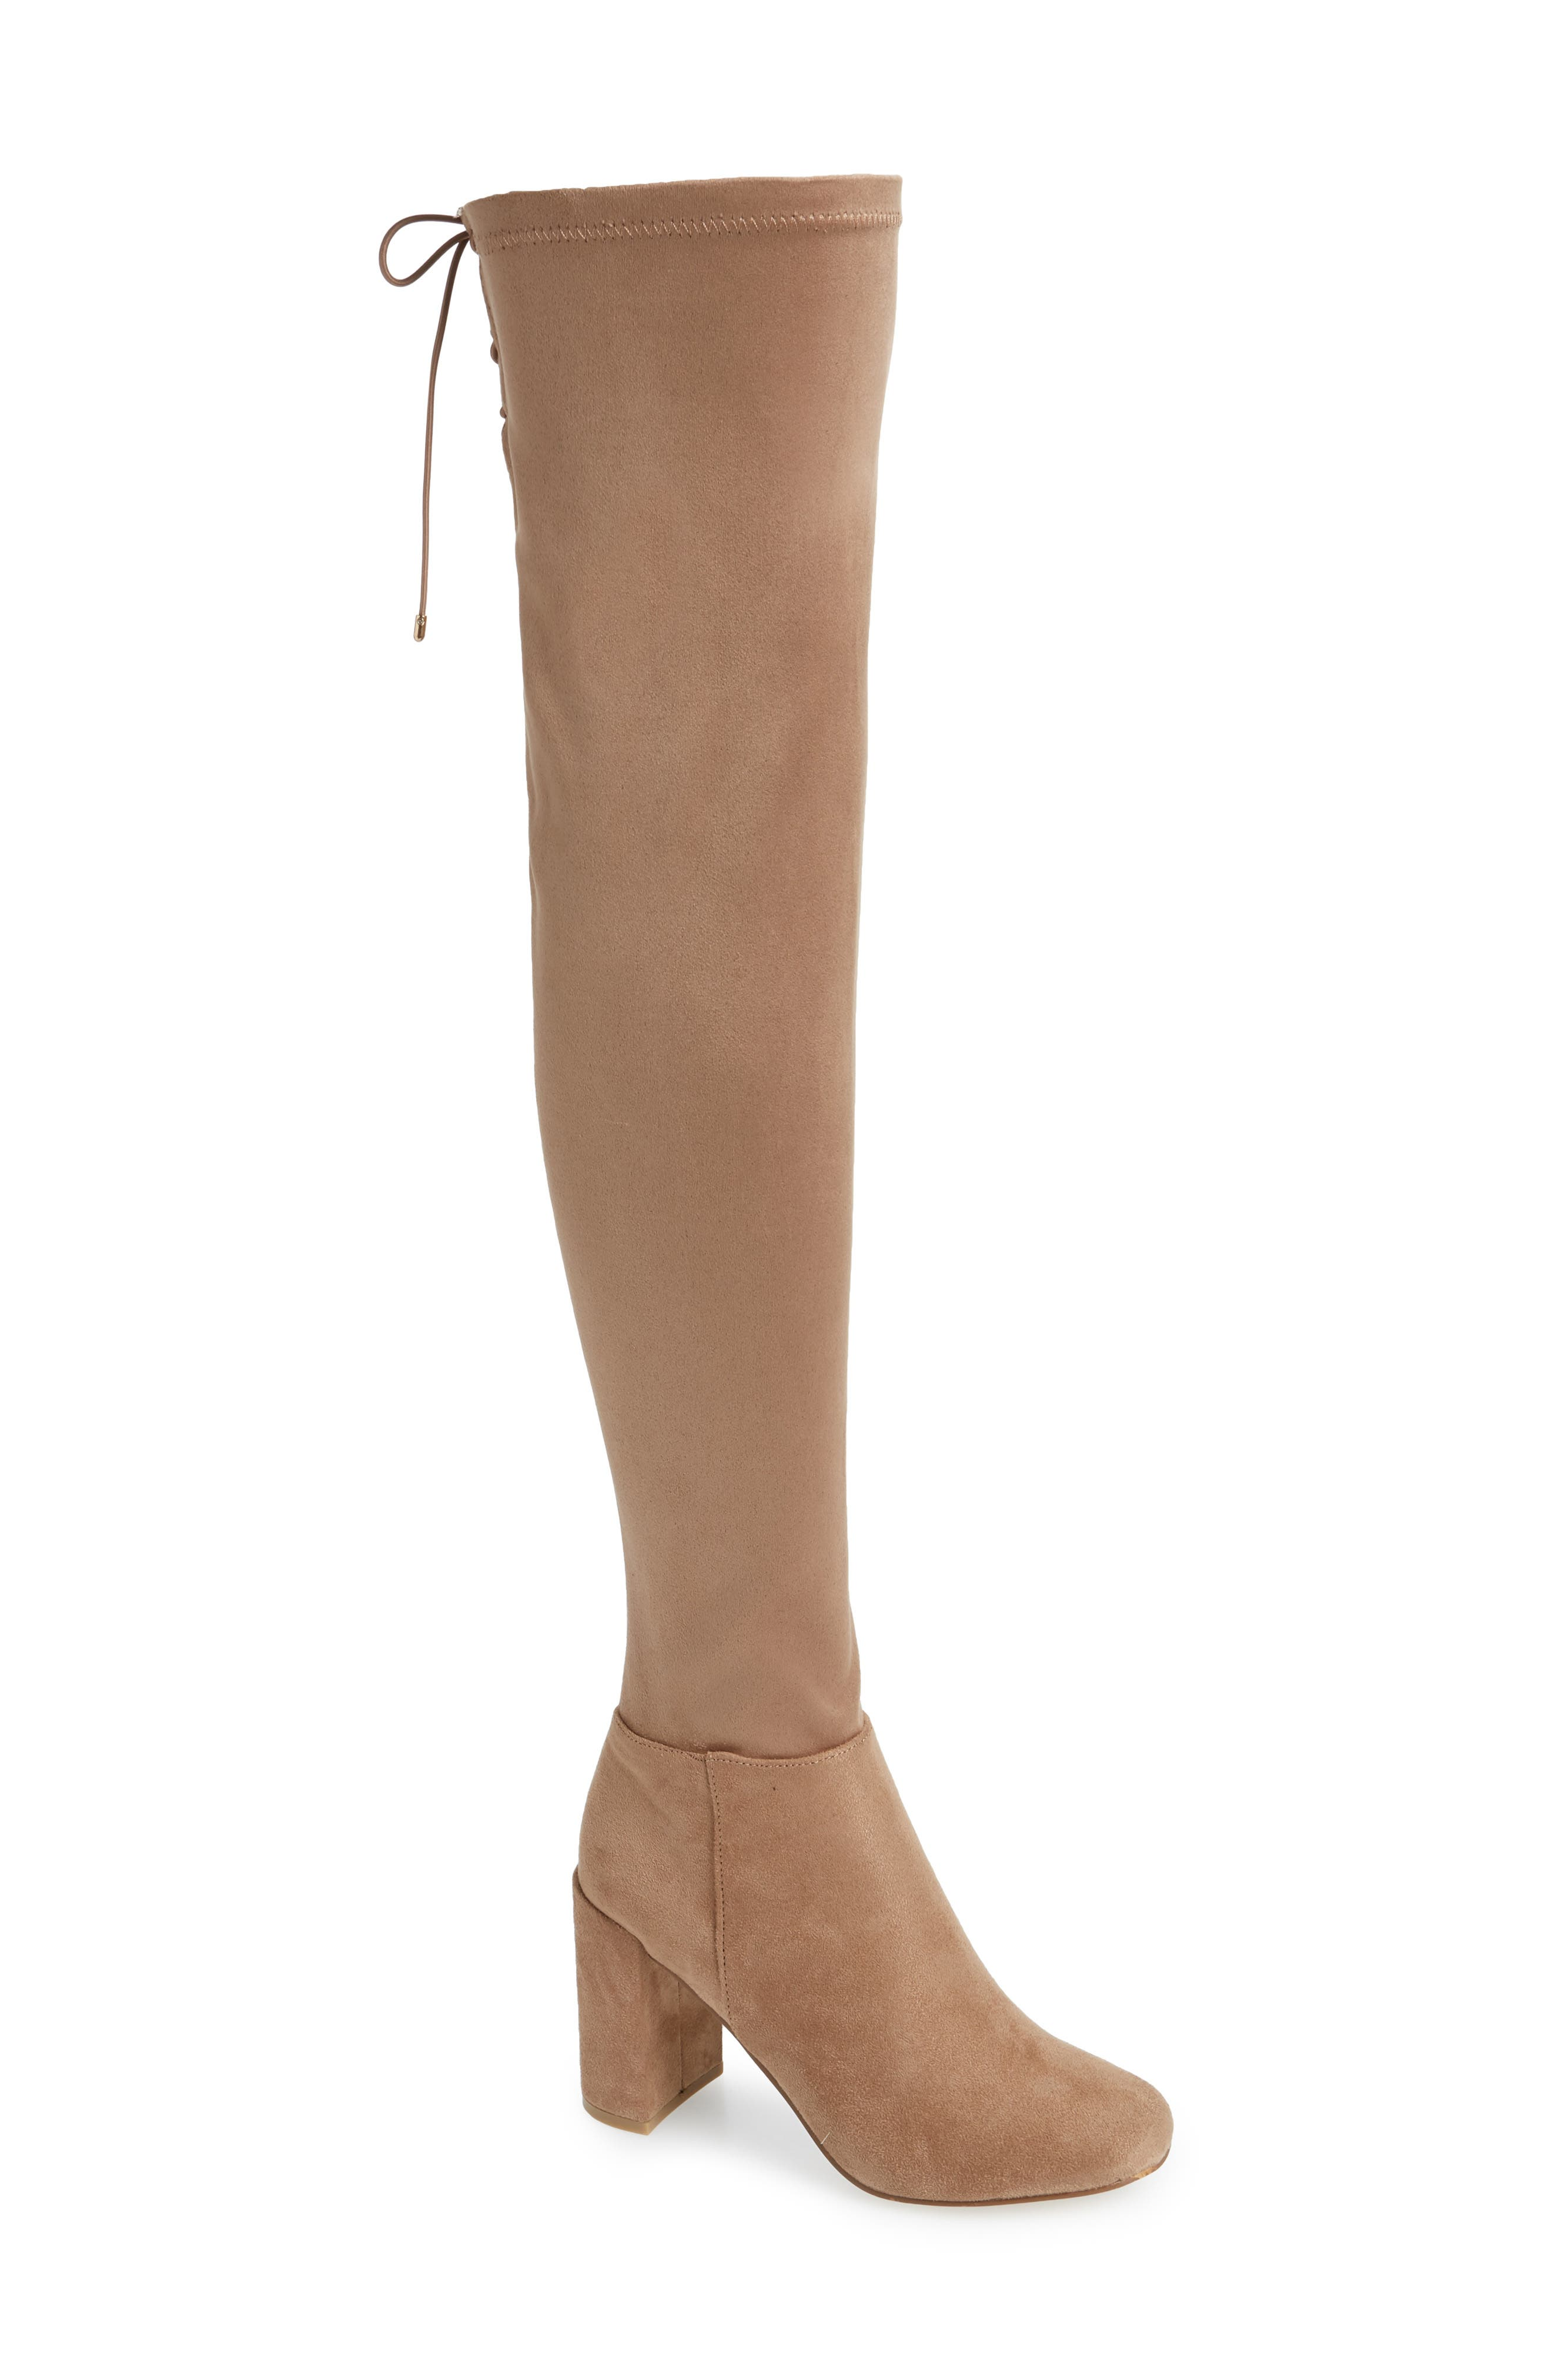 King Over the Knee Boot,                             Main thumbnail 1, color,                             MINK